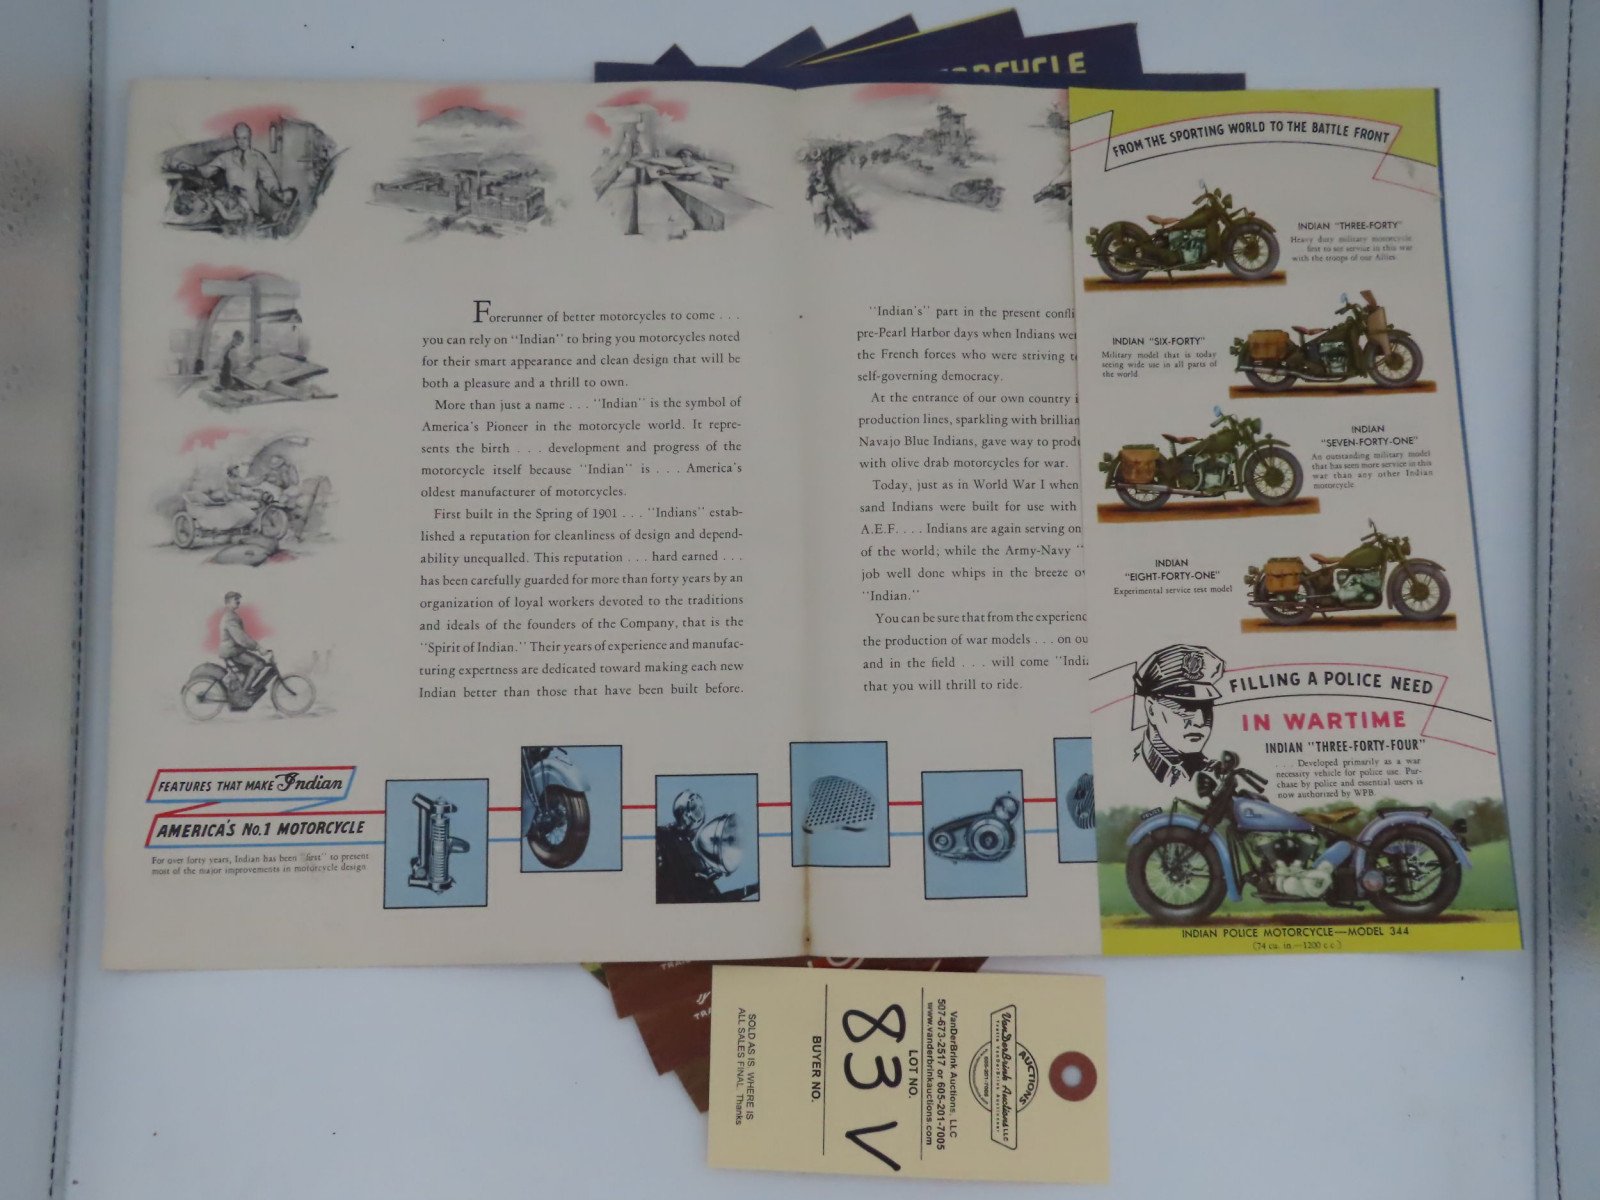 Indian Motorcycle advertising - Image 2